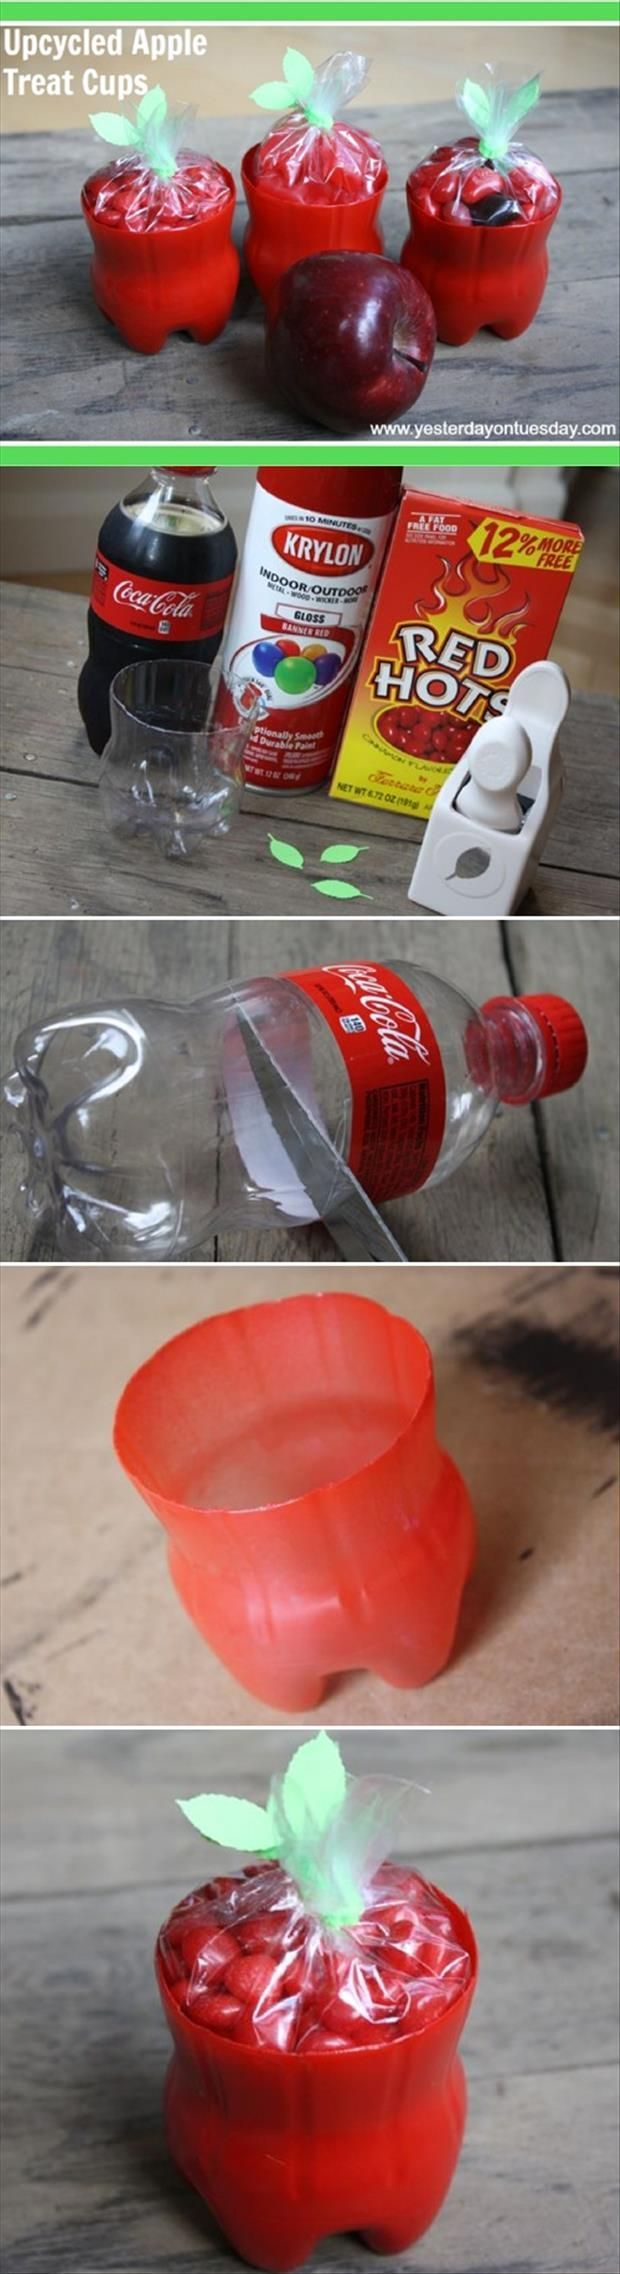 Crafty ideas - upcycled apple treat cups using coca-cola bottles!